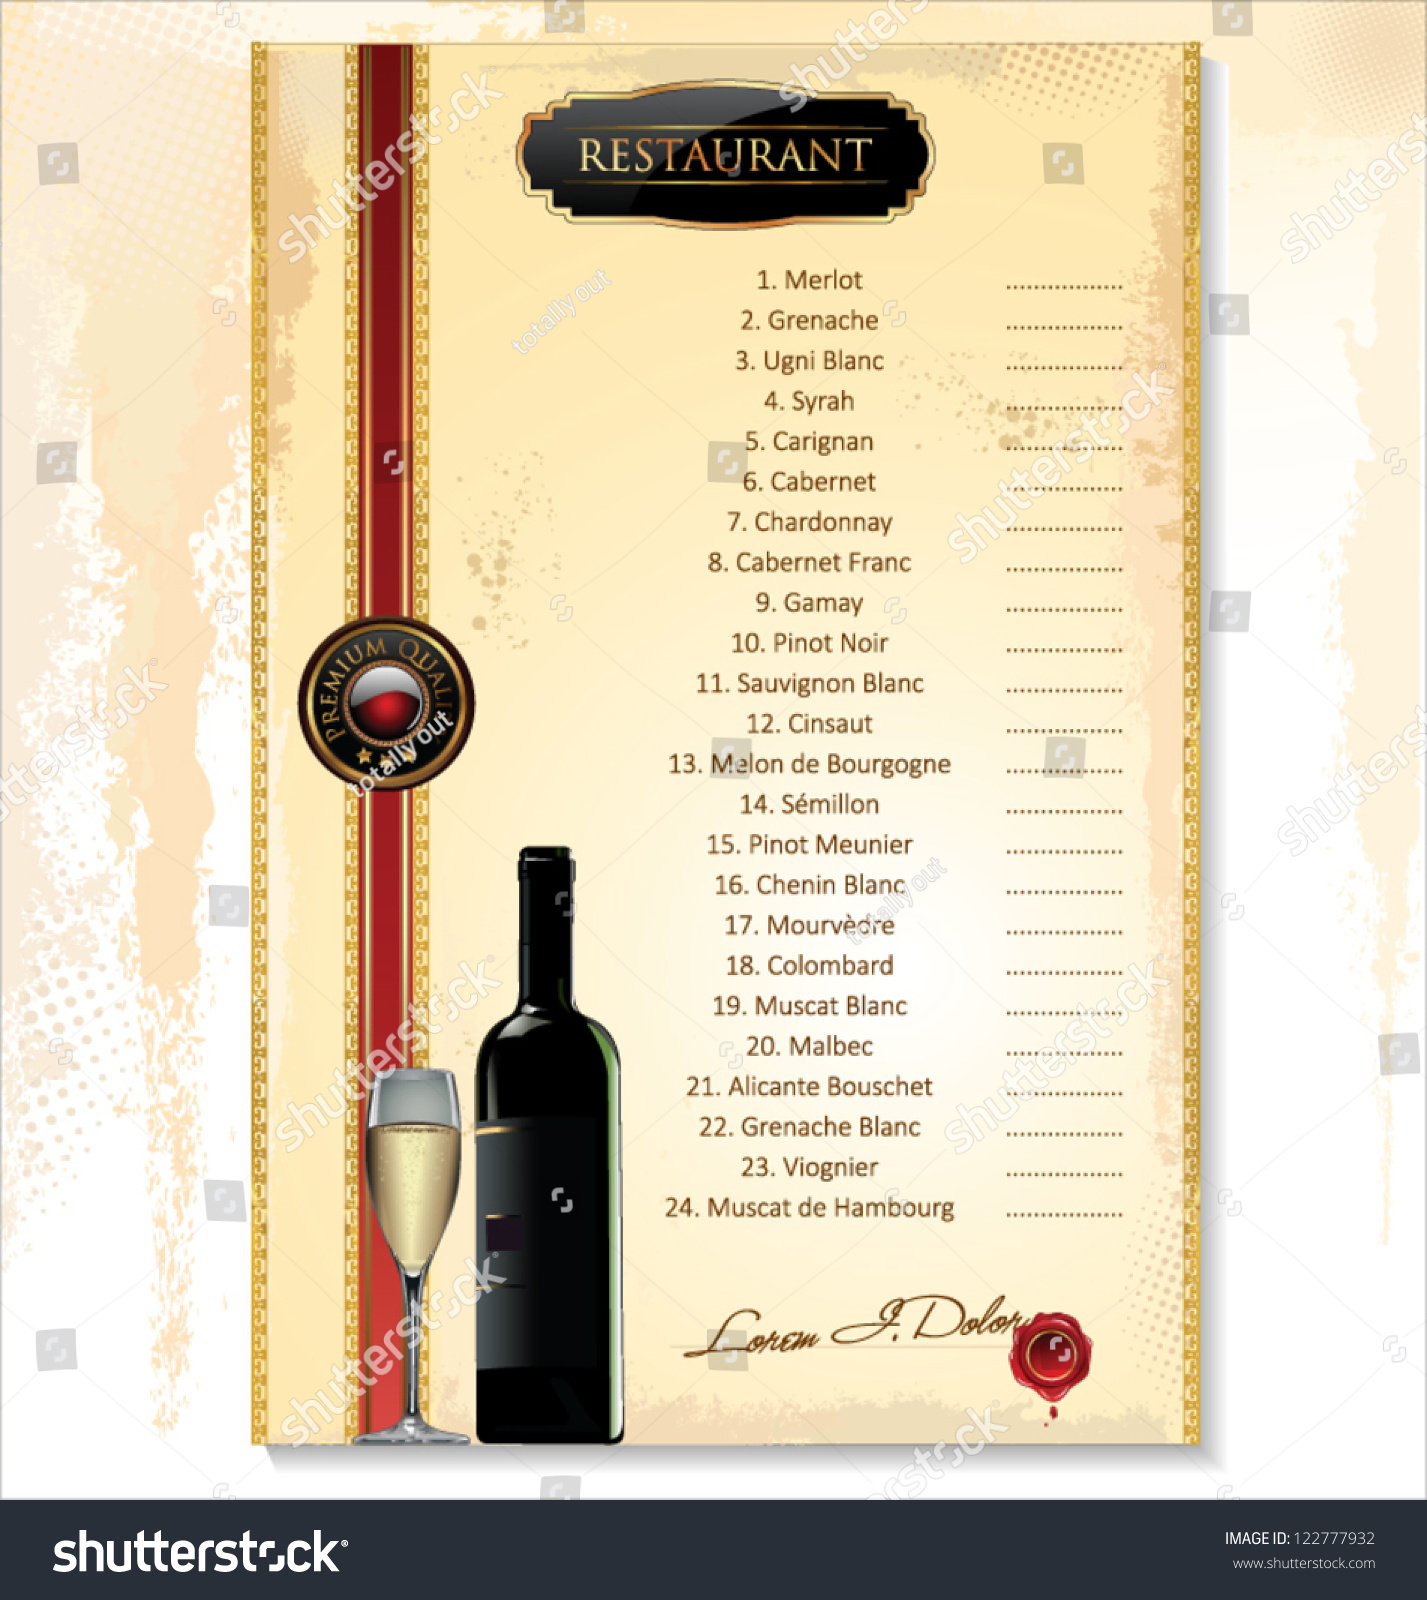 wine menu template price list stock vector 122777932 shutterstock. Black Bedroom Furniture Sets. Home Design Ideas